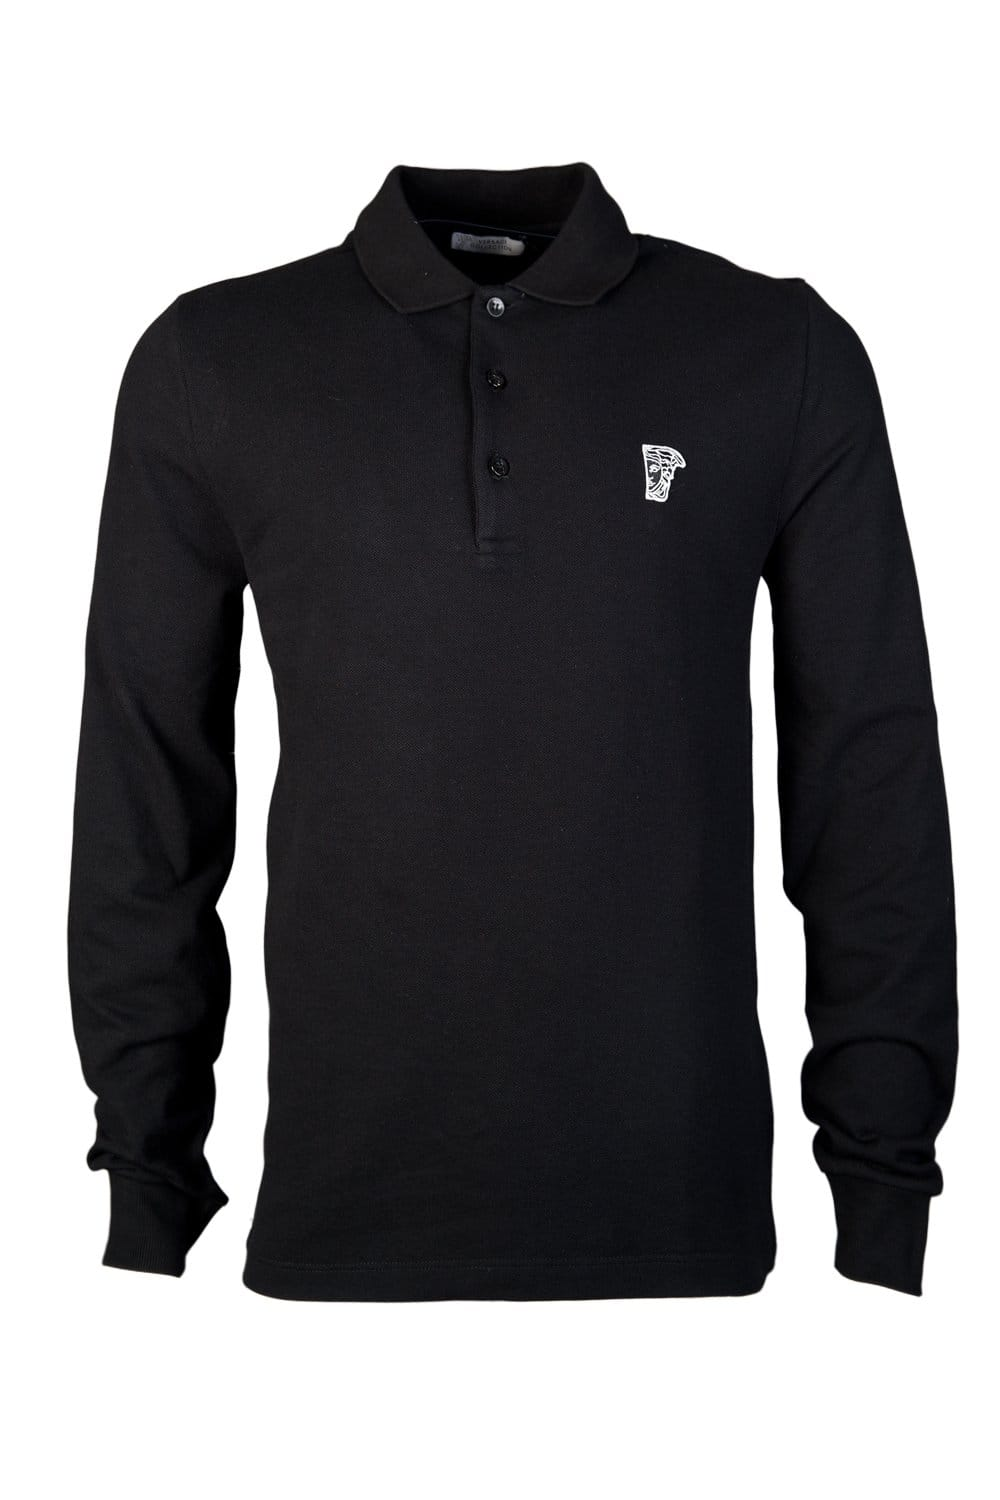 black versace polo